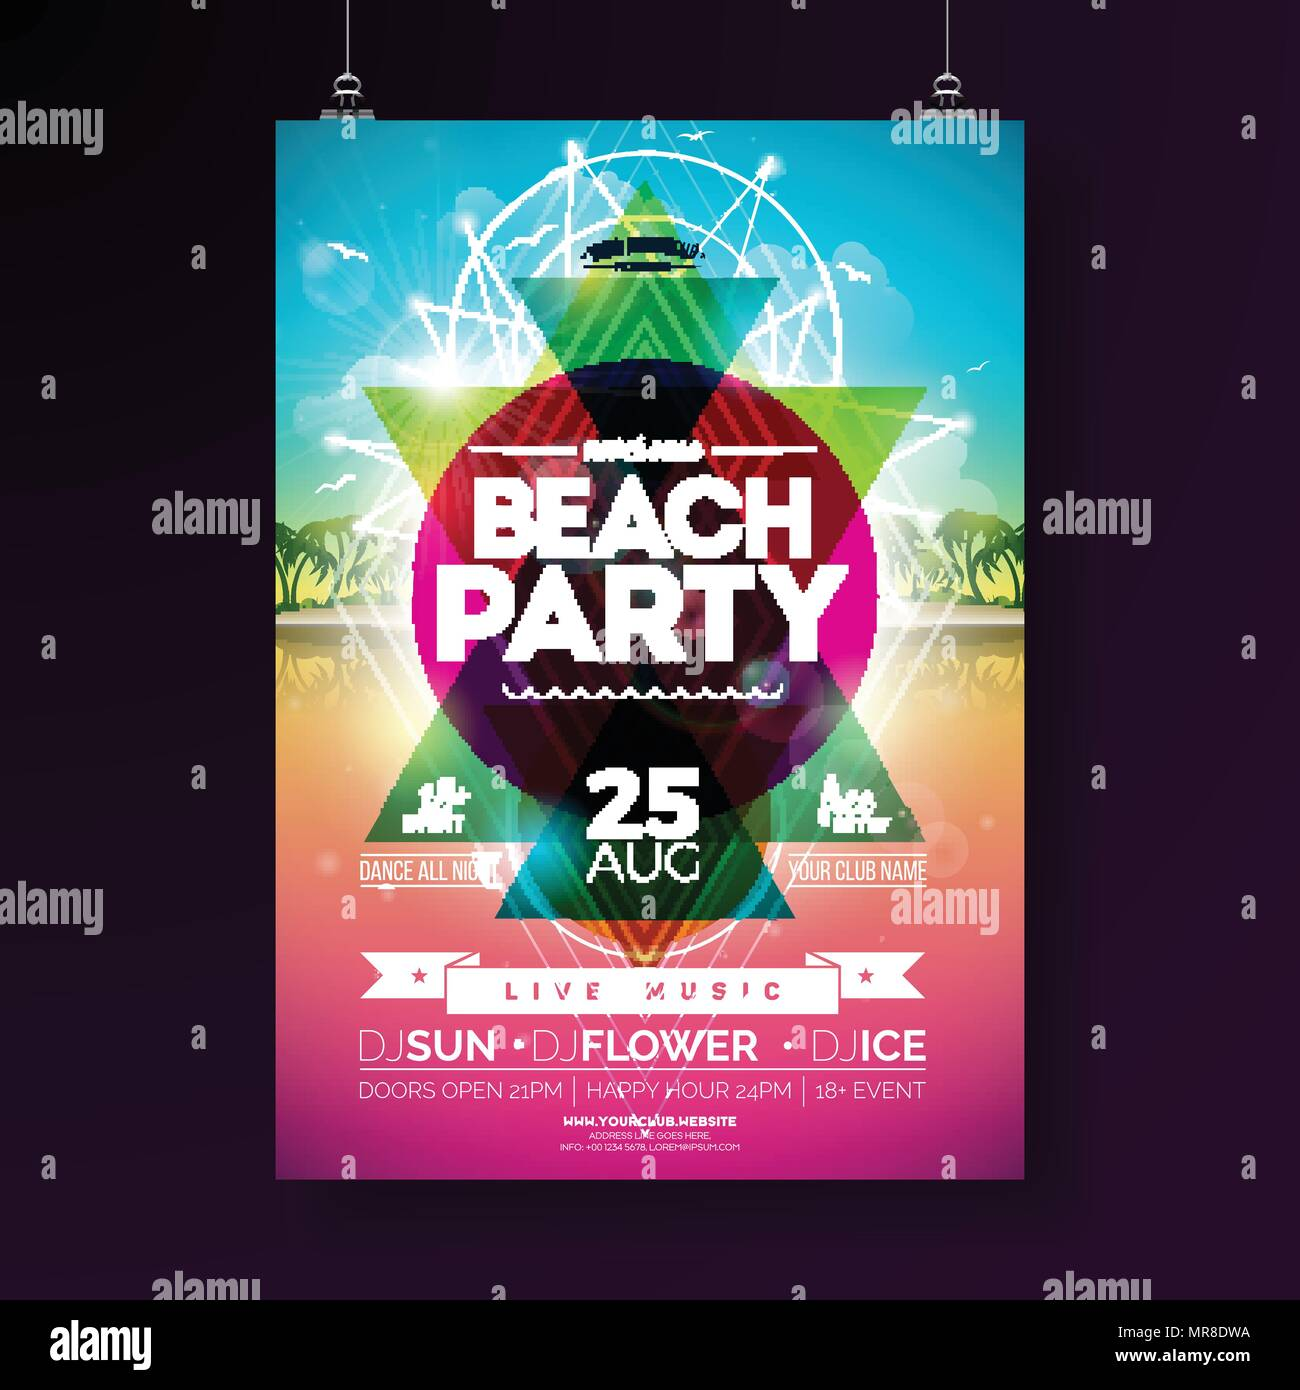 vector summer beach party flyer design with typographic elements and